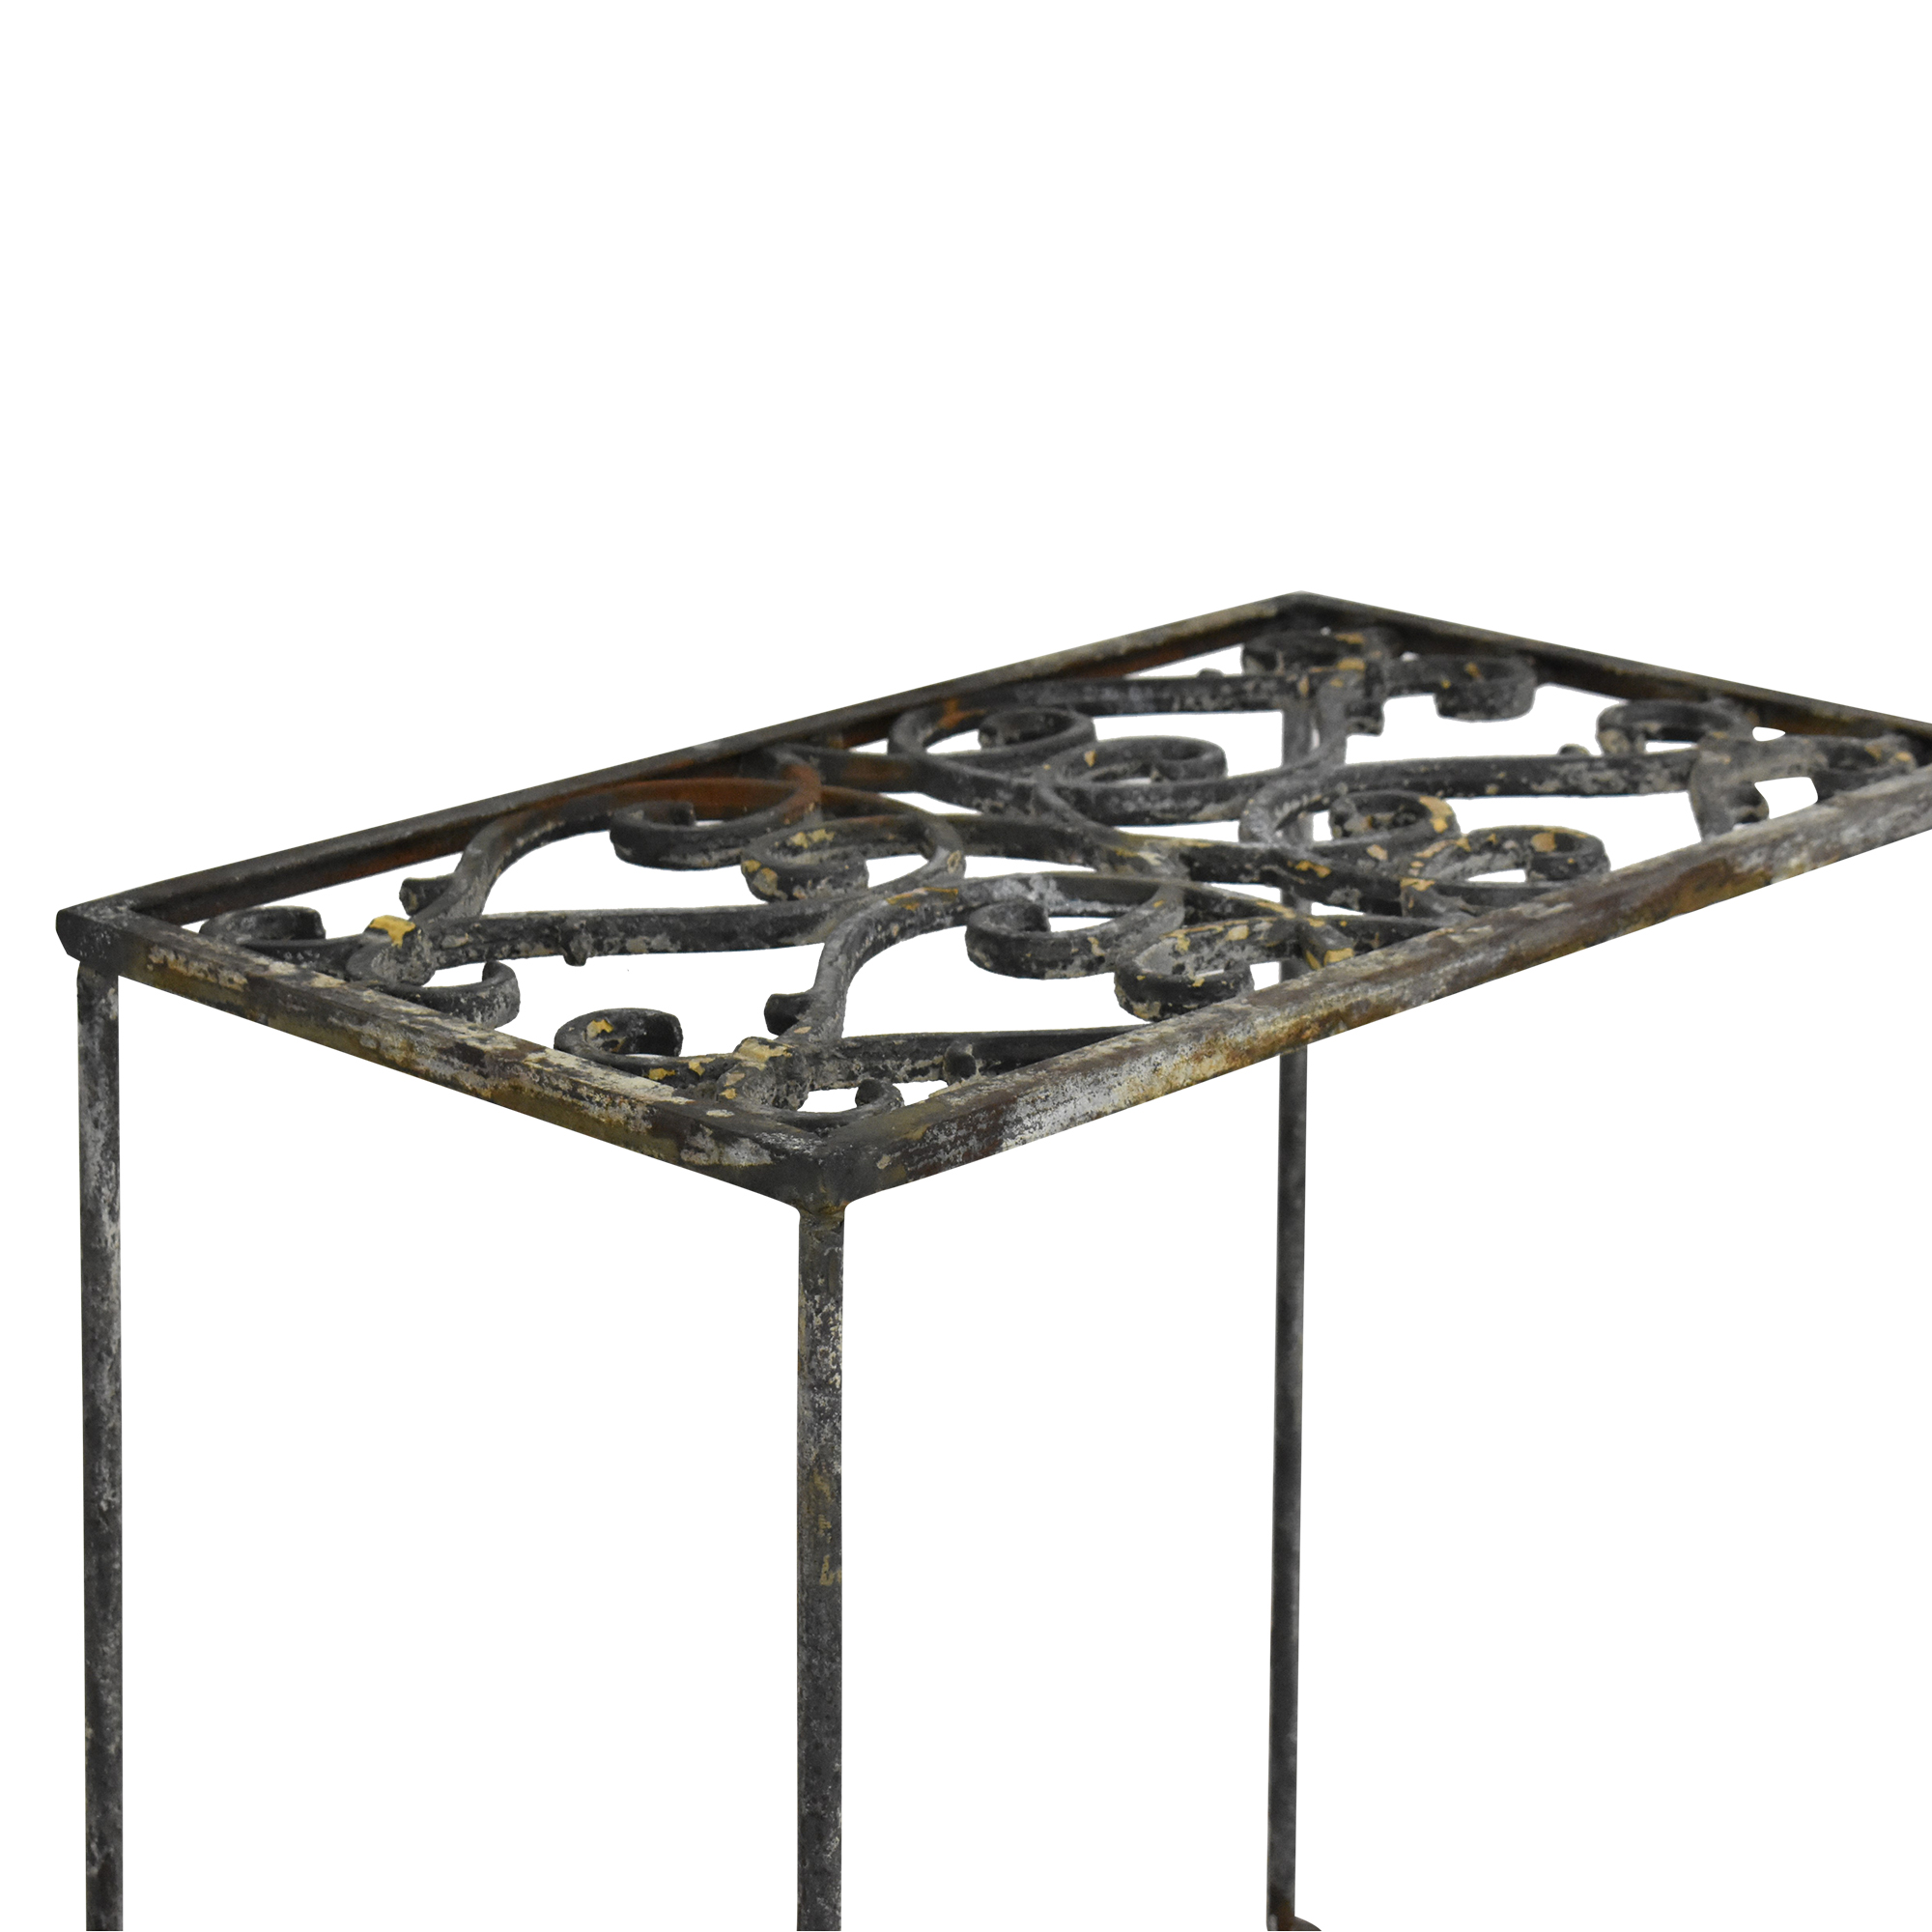 Anthropologie Decorative Accent Table second hand